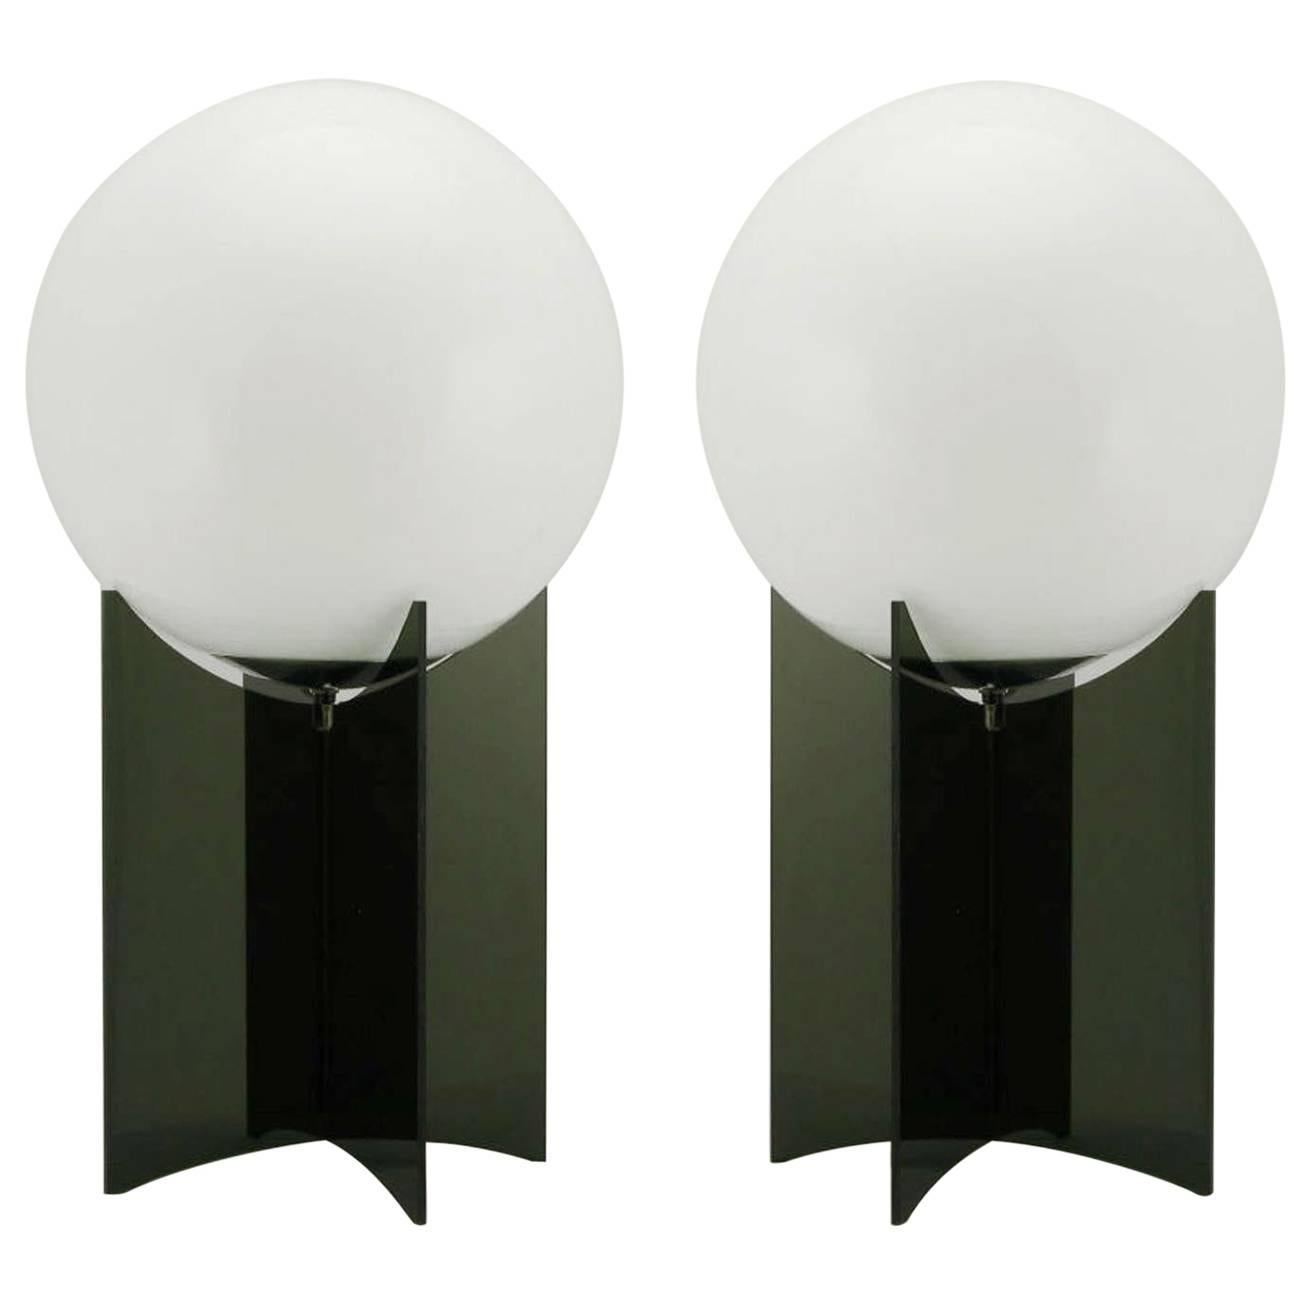 Pair of Smoked Acrylic and Milk Glass Table Lamps For Sale at 1stdibs